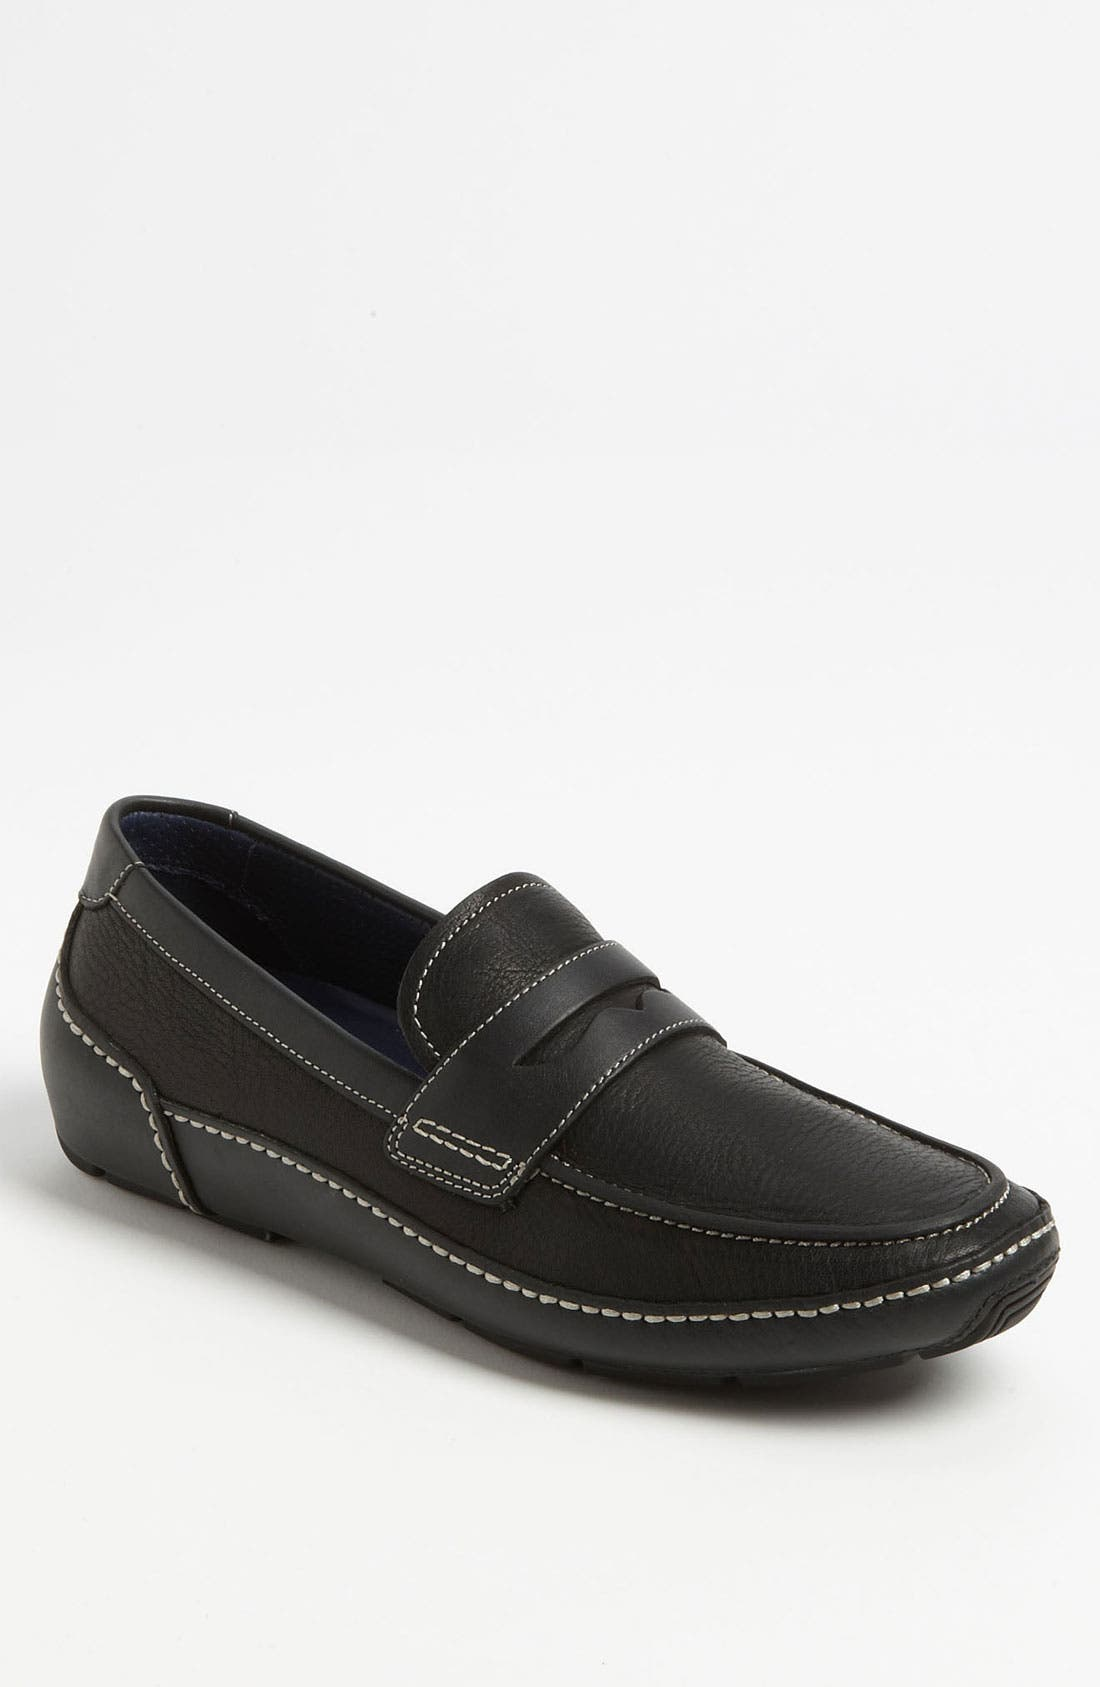 Main Image - Cole Haan 'Air Mitchell' Driving Shoe   (Men)